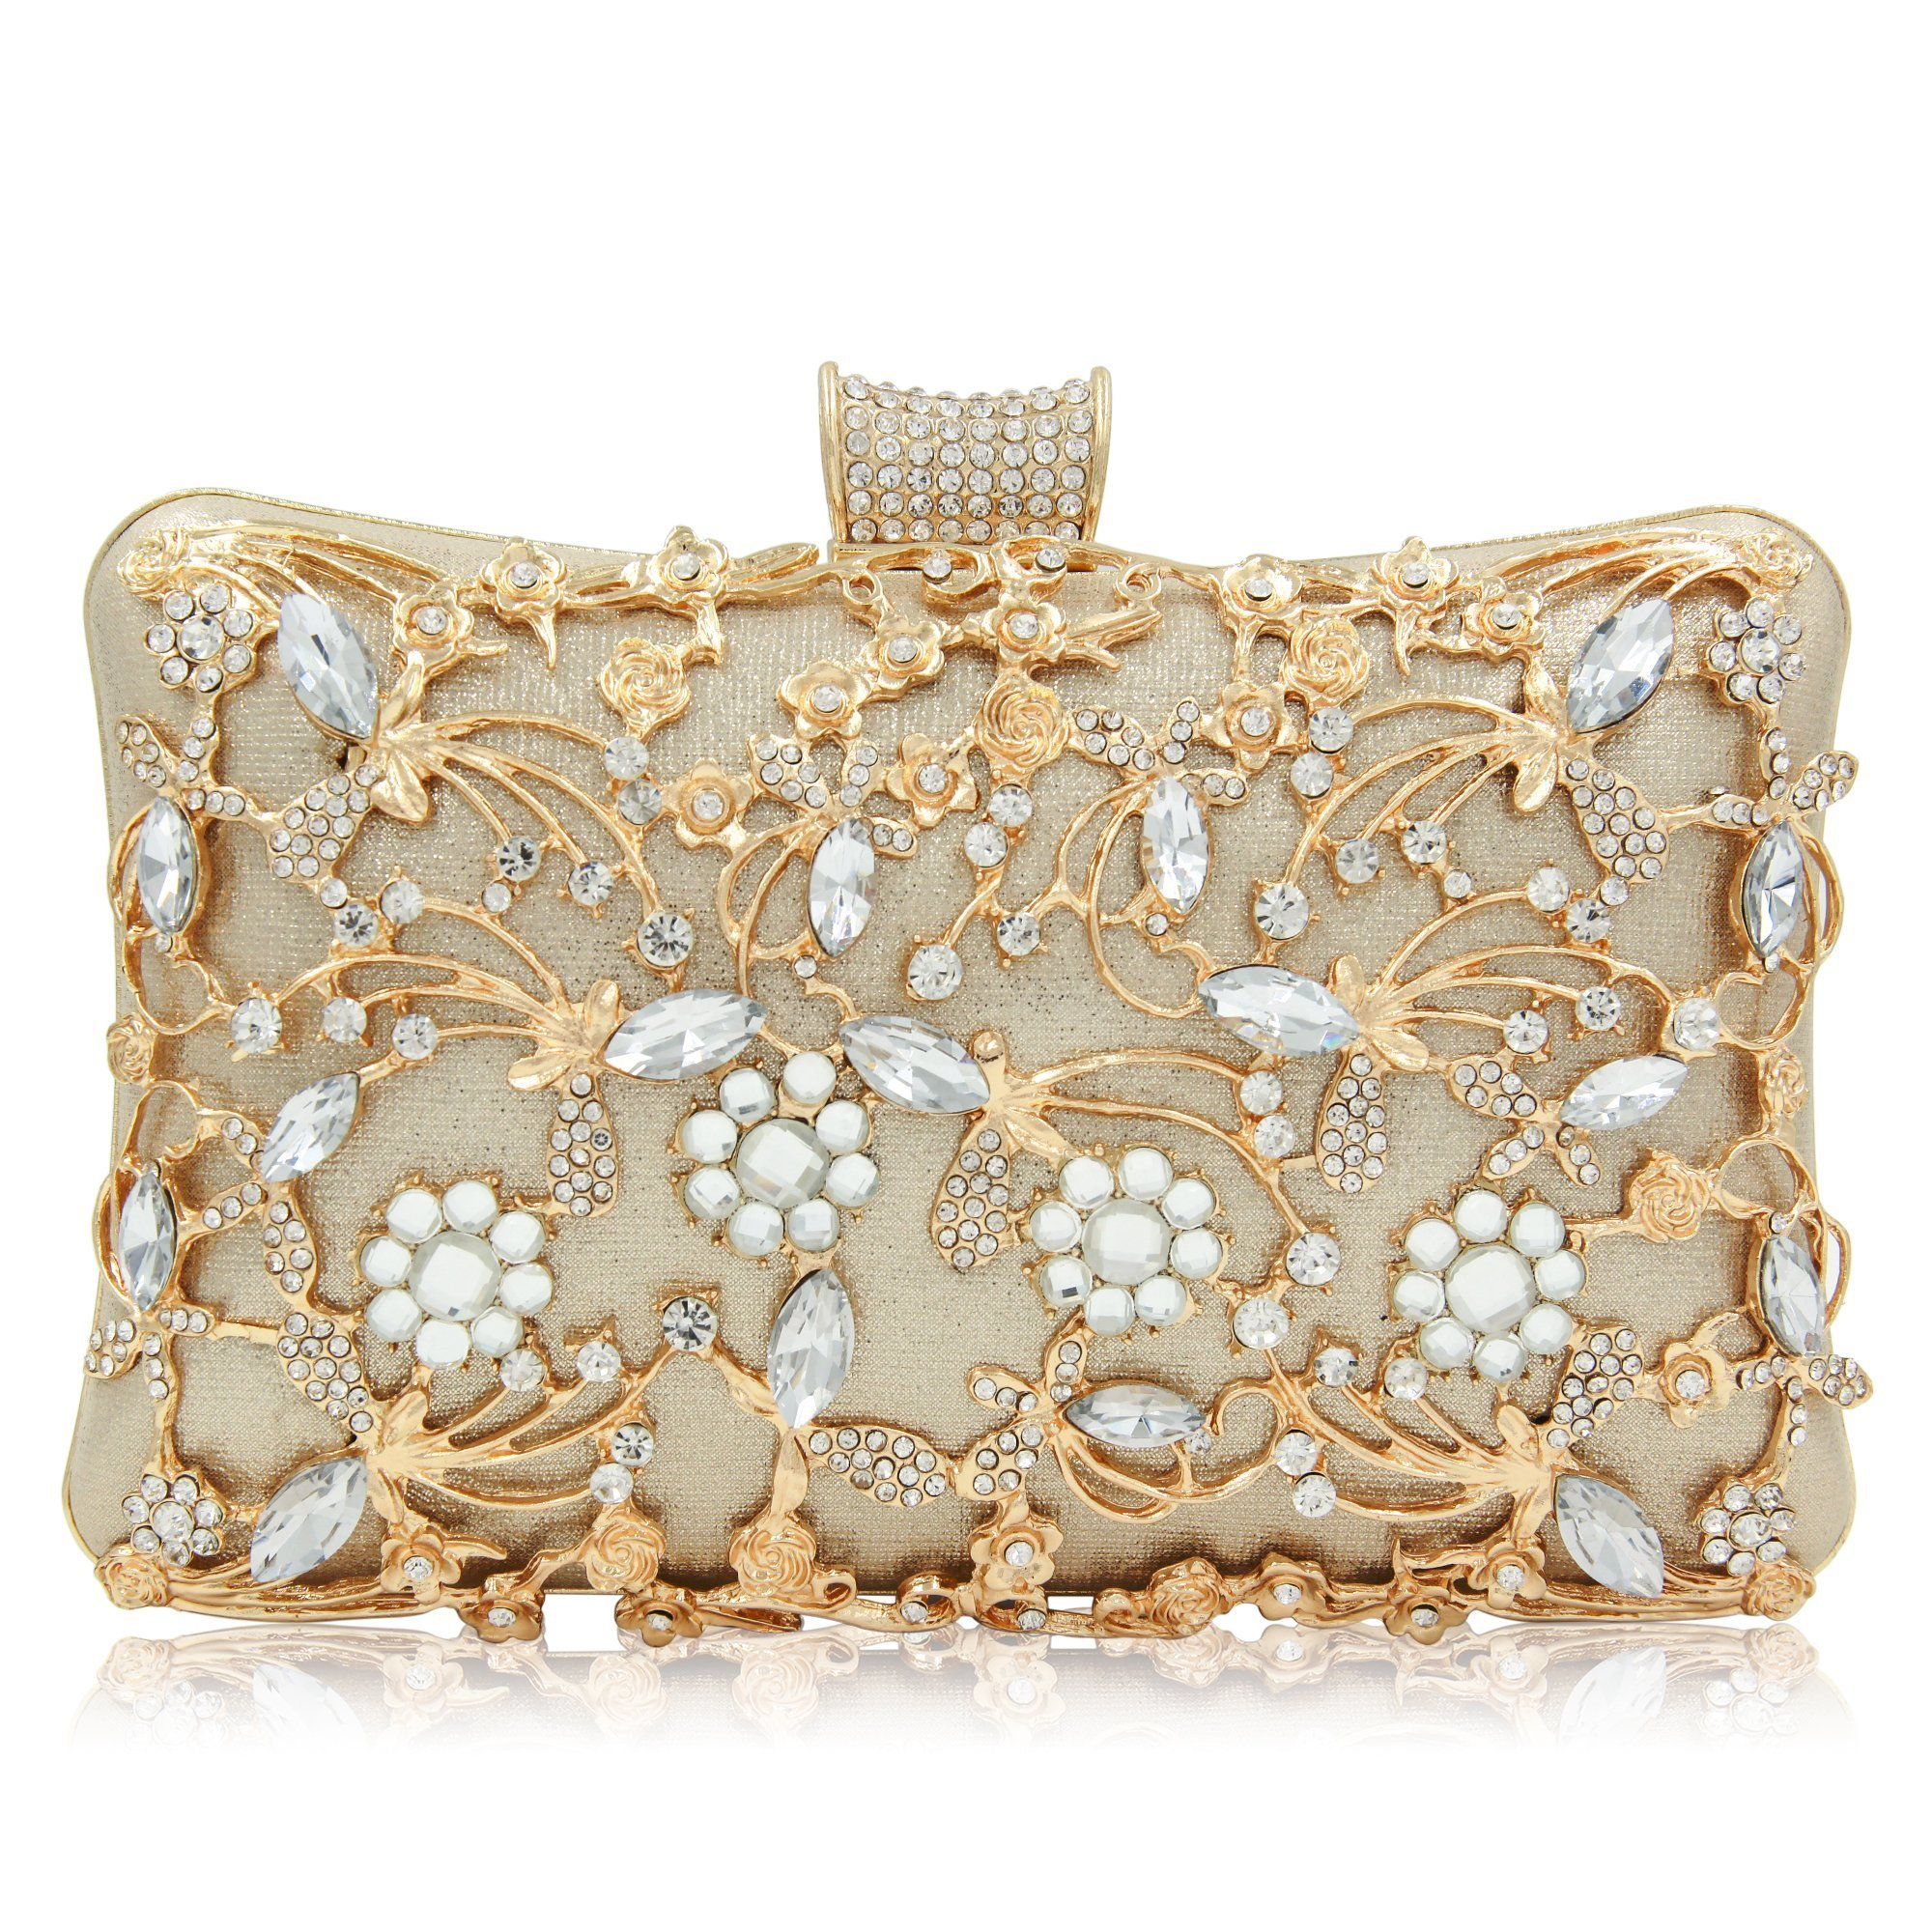 Glitter Crystal Clutches Bridal Evening Bags And Clutches For Women Large Handbag Clutch Purse With Strap (Gold)